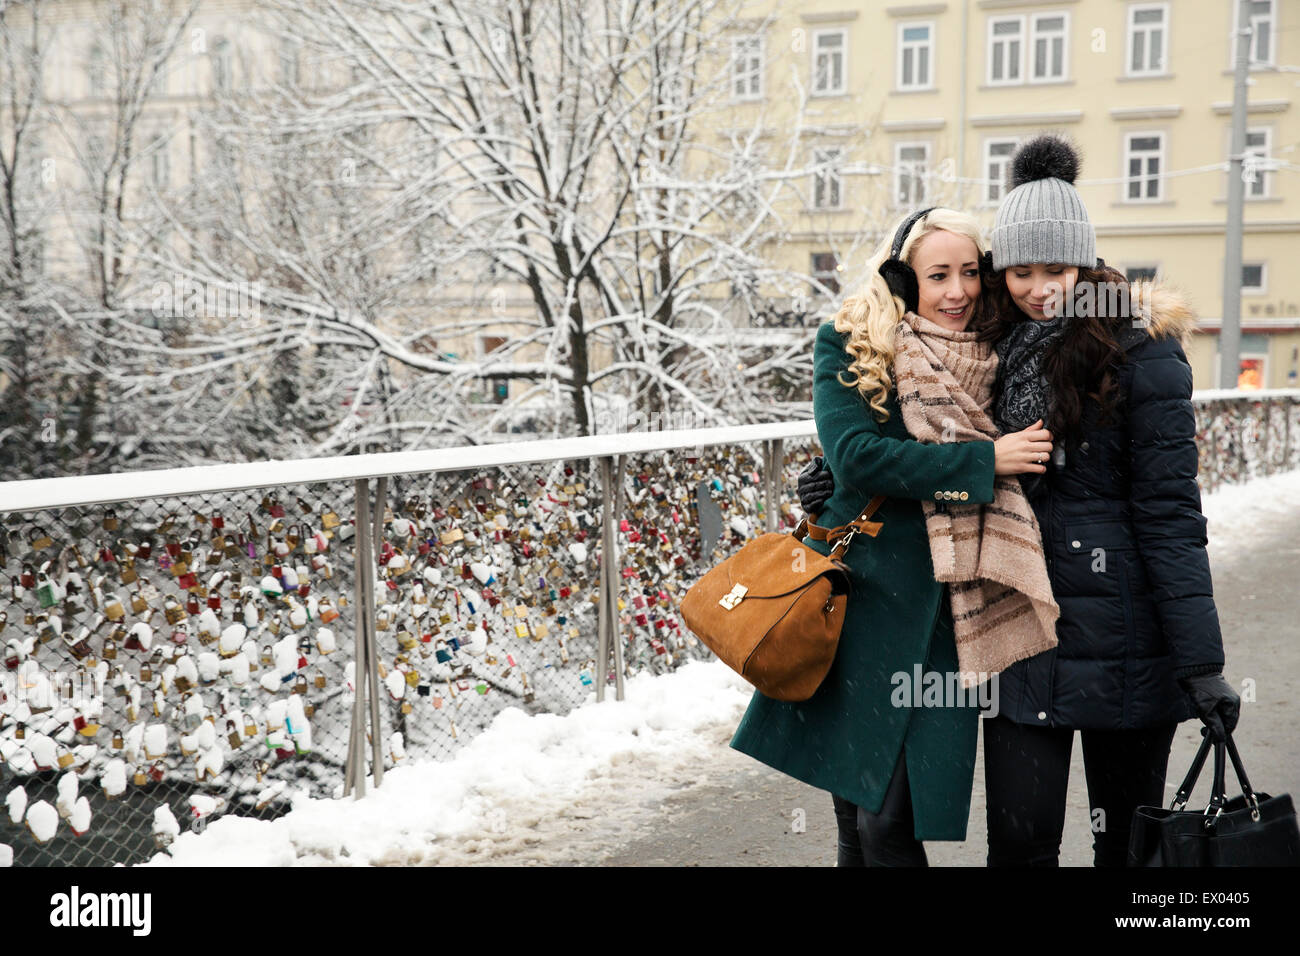 Two mid adult women wearing winter clothes - Stock Image